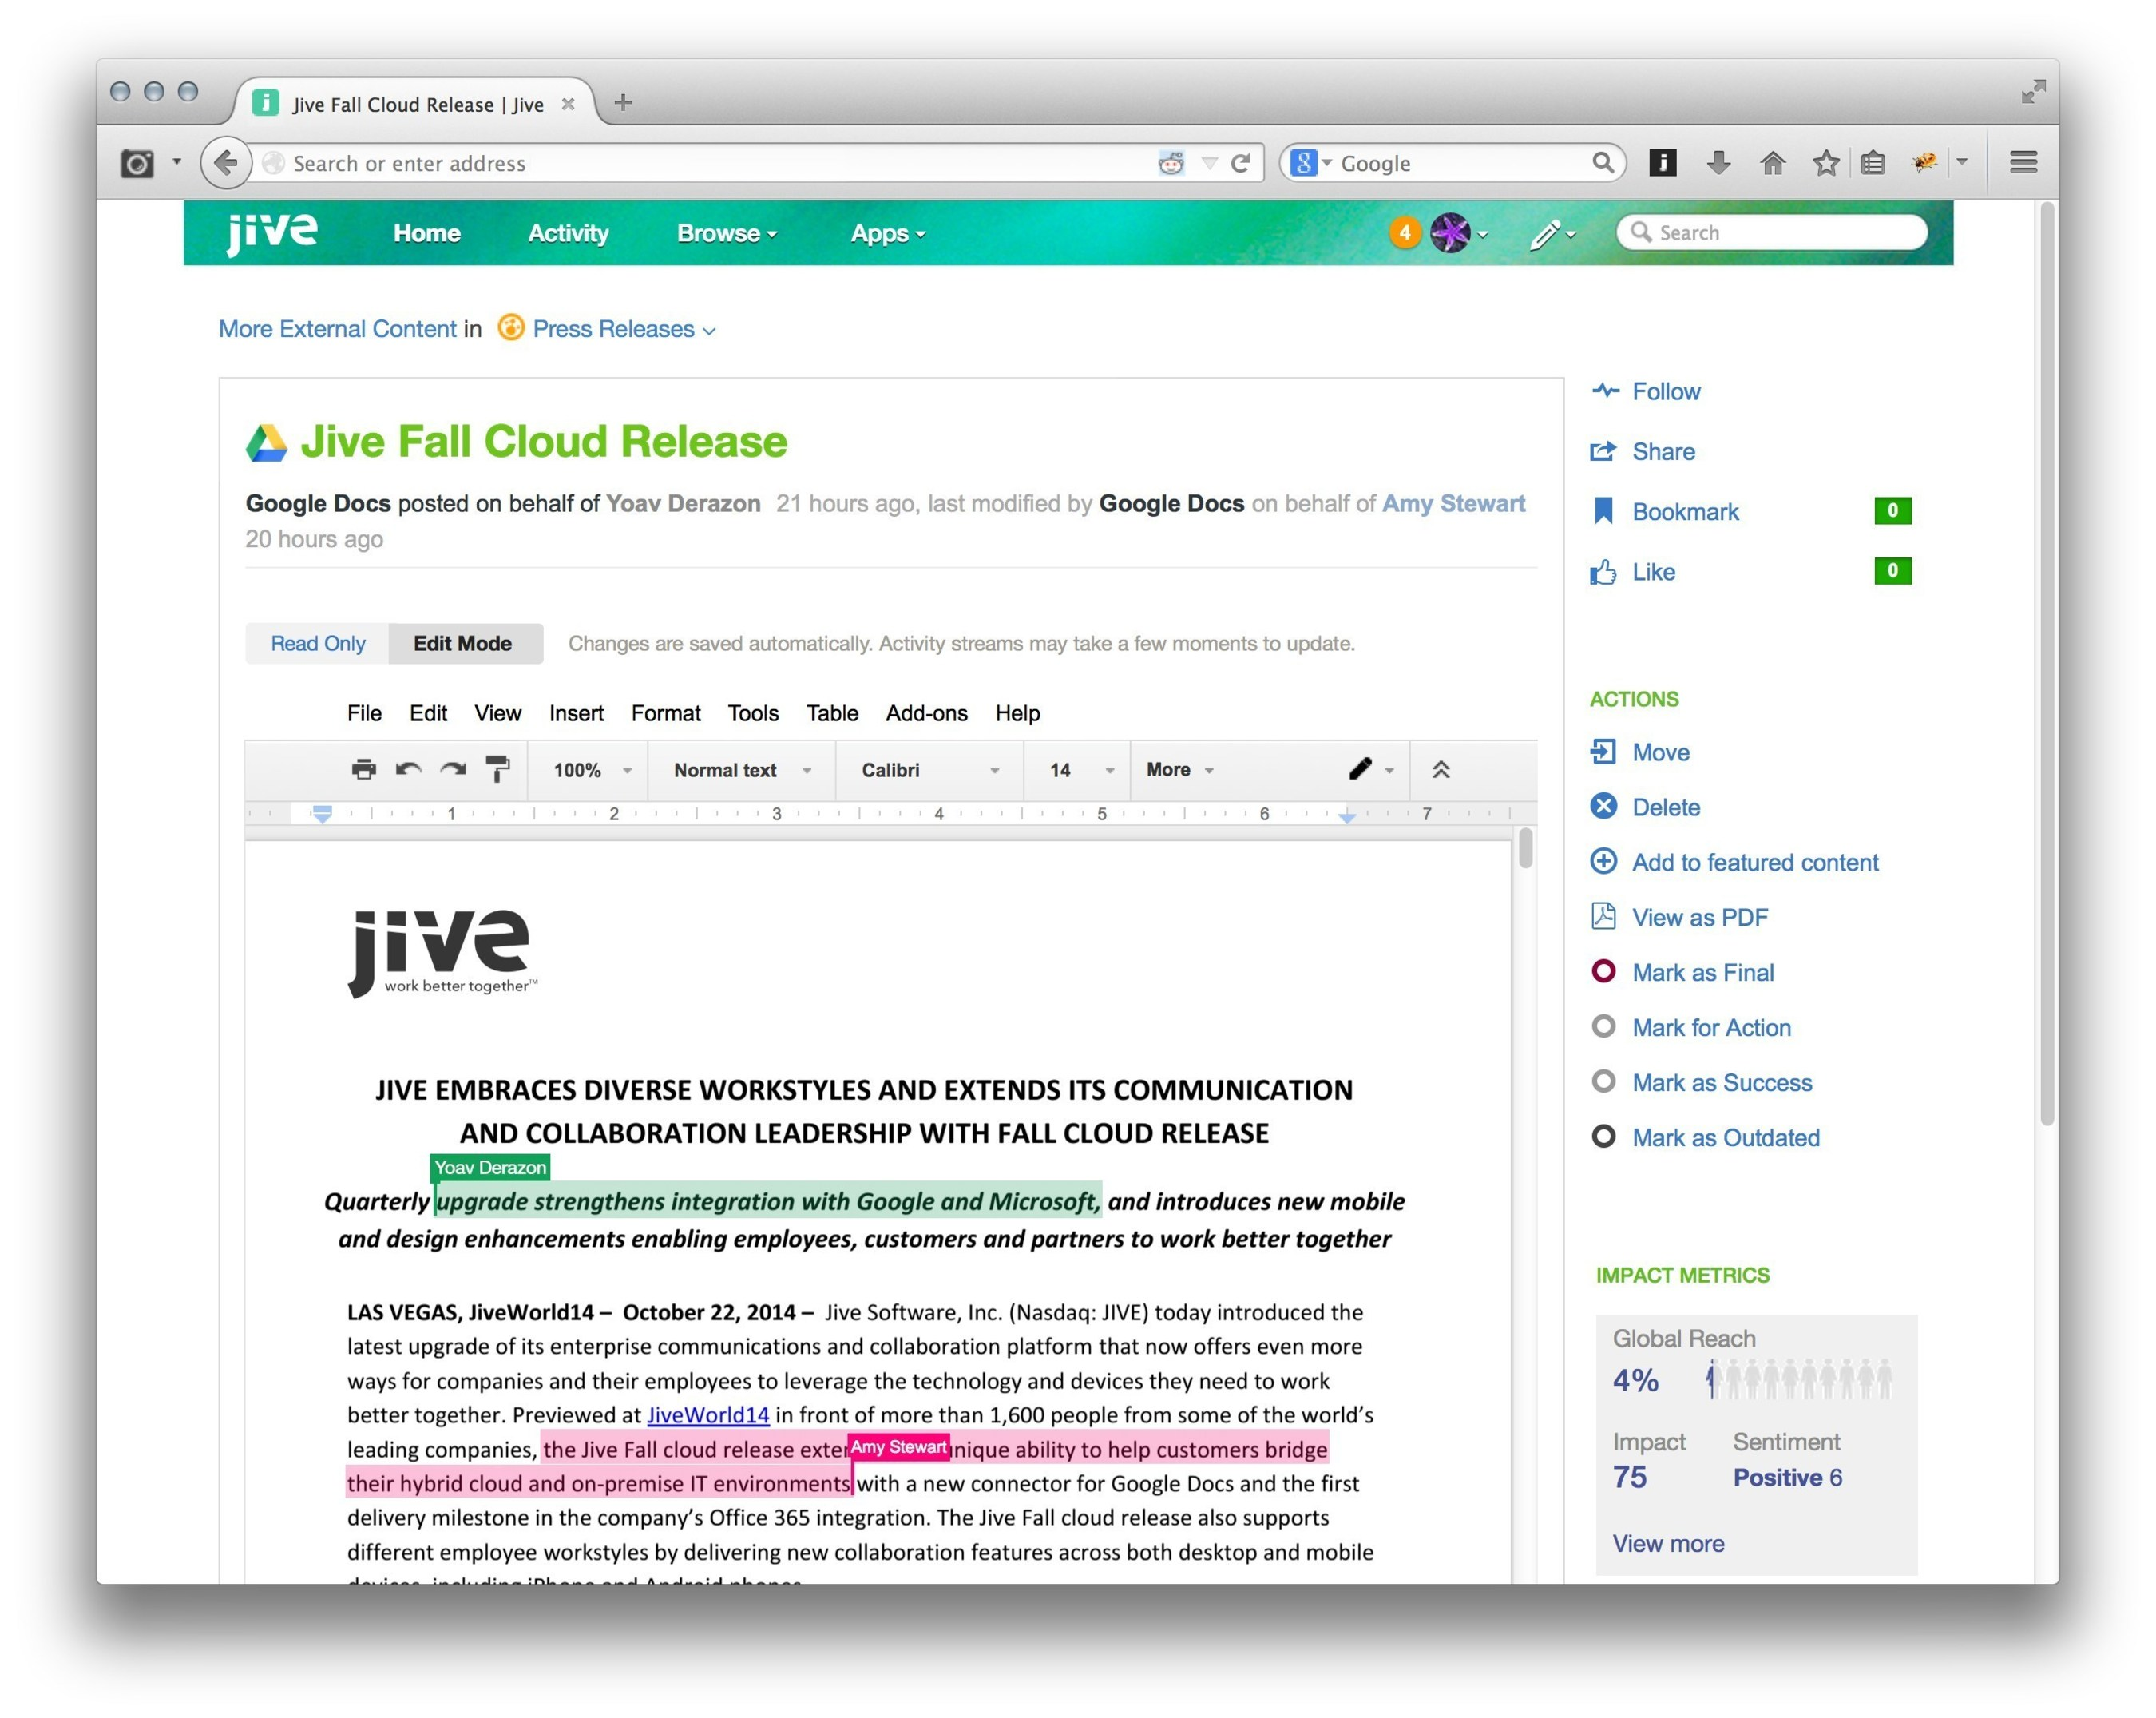 @Jivesoftware Embraces Diverse Workstyles And Extends Its Communication And Collaboration Leadership With Fall ...